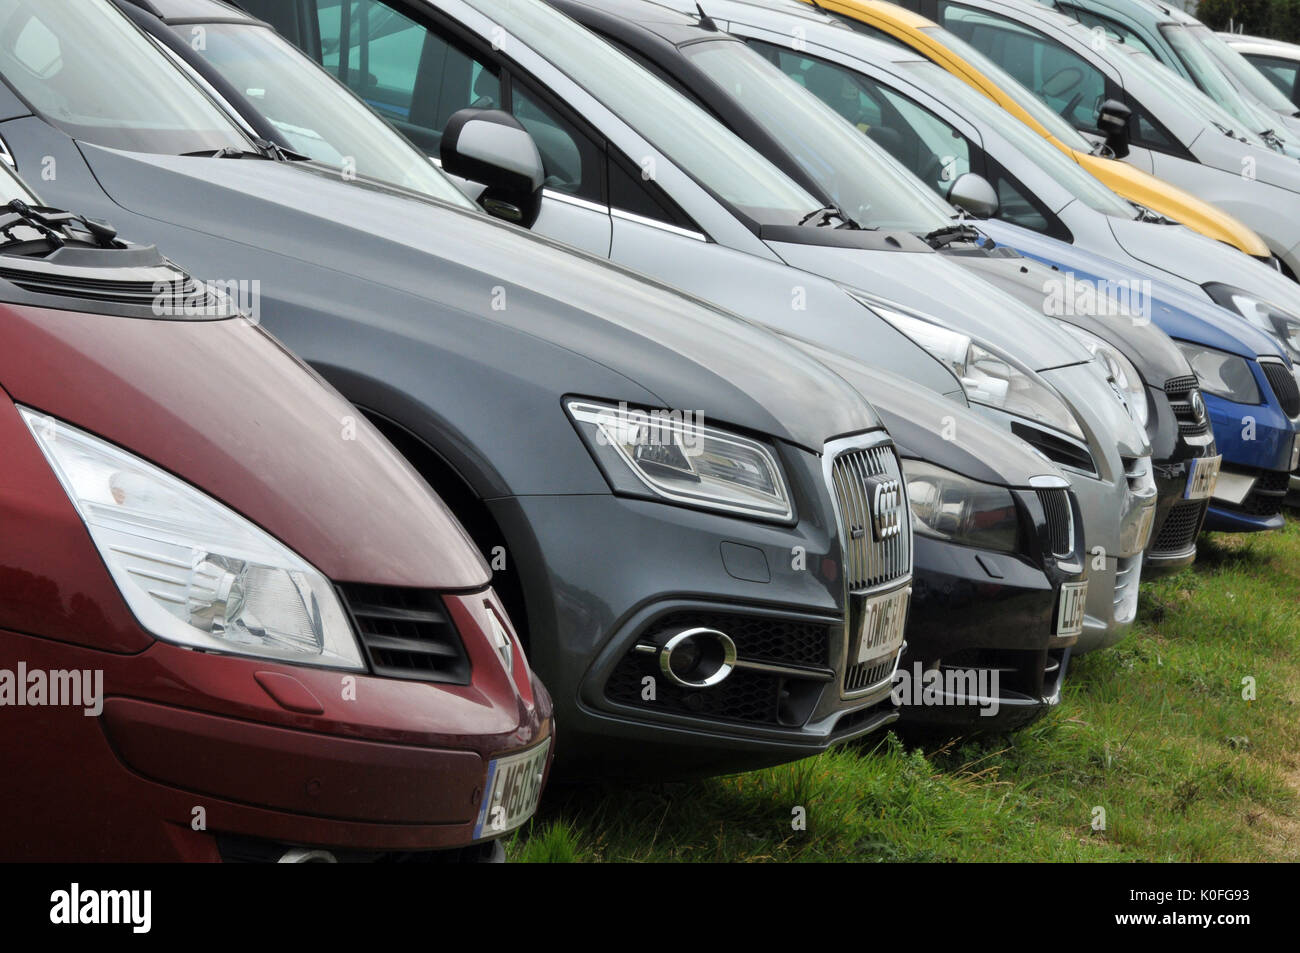 Car Dealerships Stock Photos Amp Car Dealerships Stock